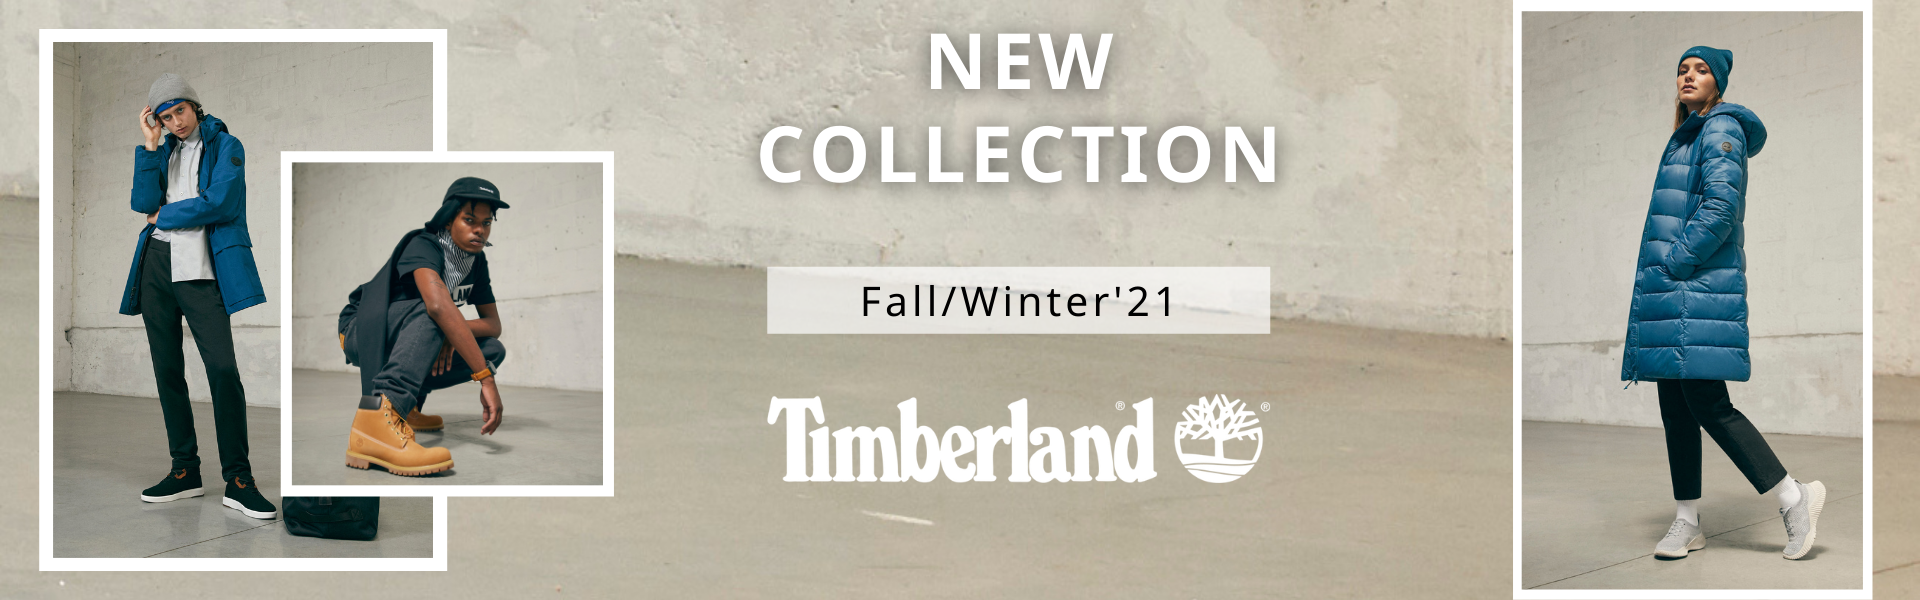 TBL_FW21_NEW COLLECTION